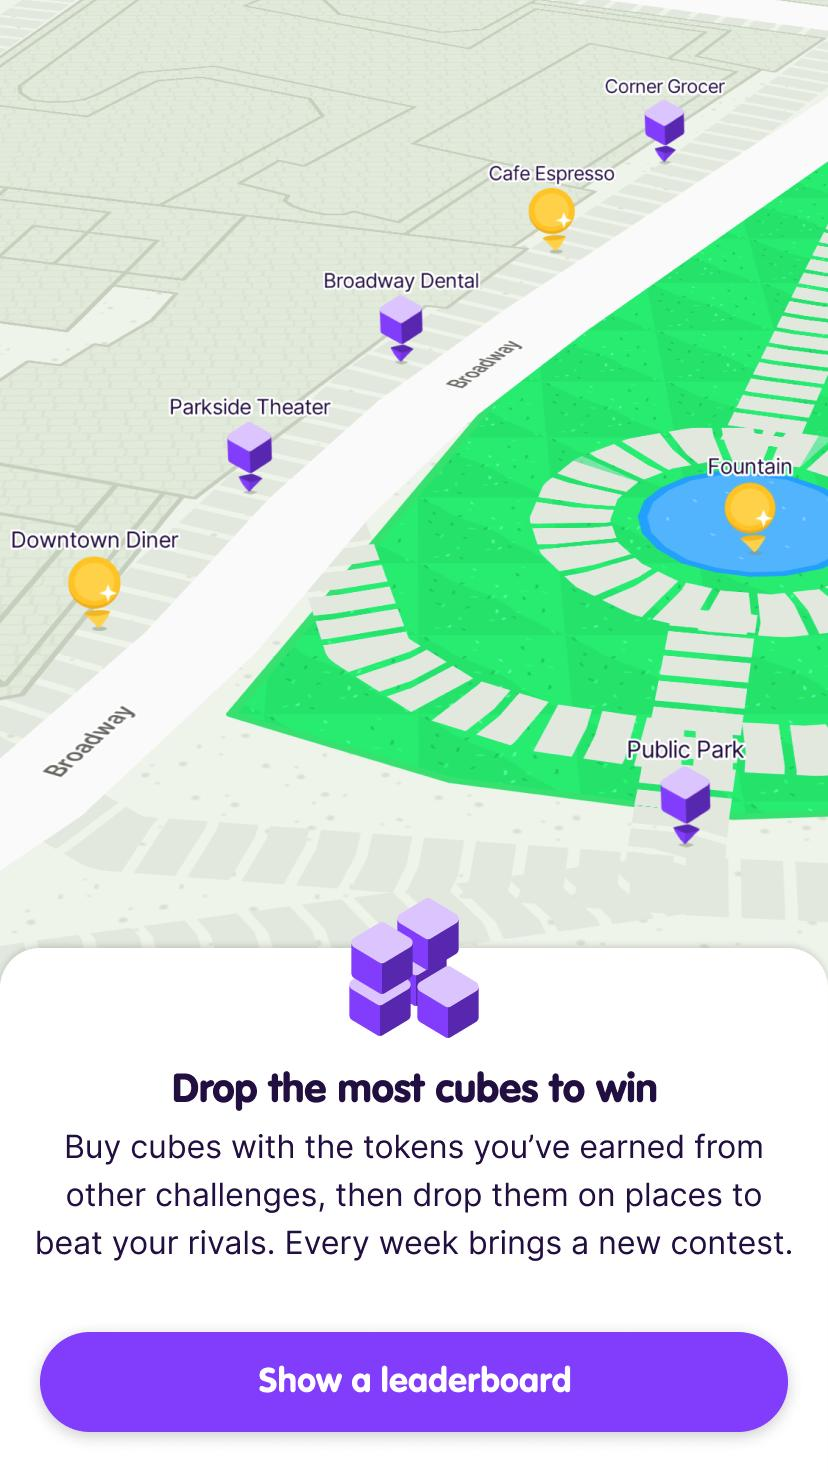 Screenshot from the app intro showing places the user has dropped cubes on the map and prompting the user to tap a button to Show a leaderboard.